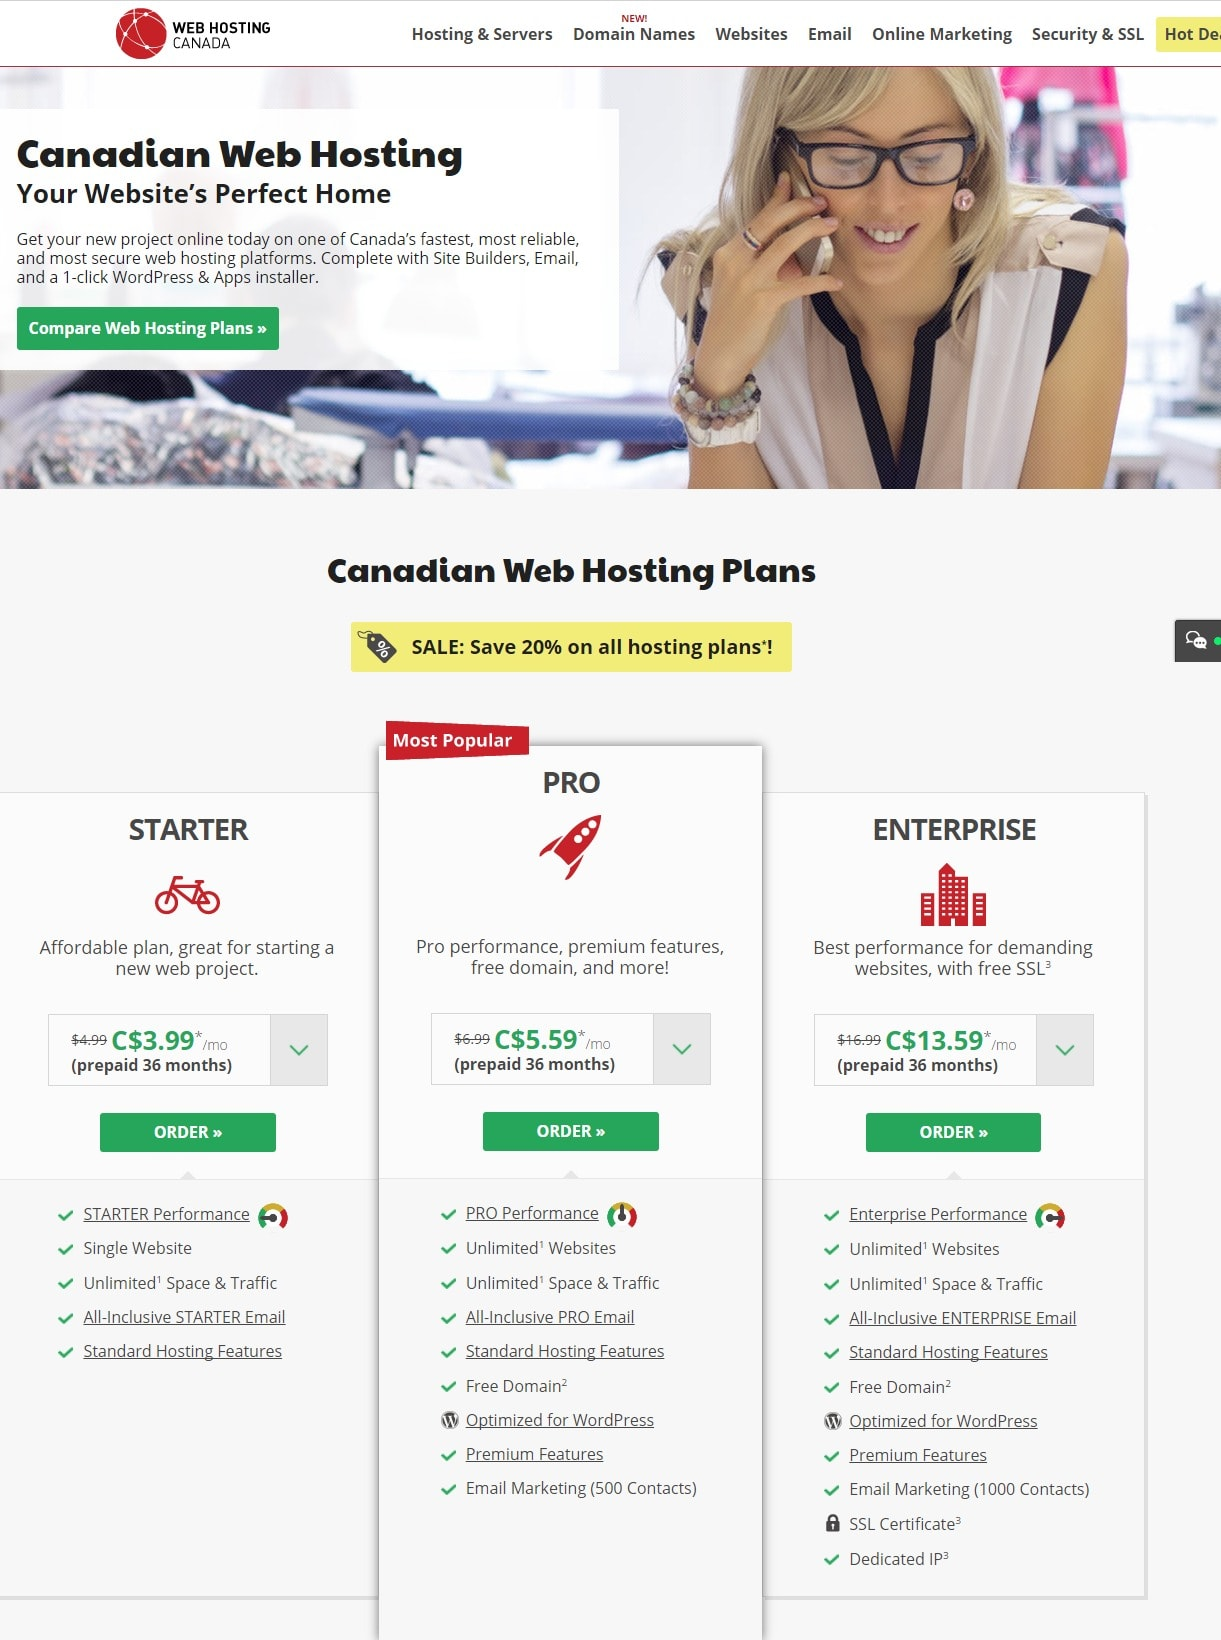 web hosting canada pricing- Web Hosting Providers In Canada/Toronto